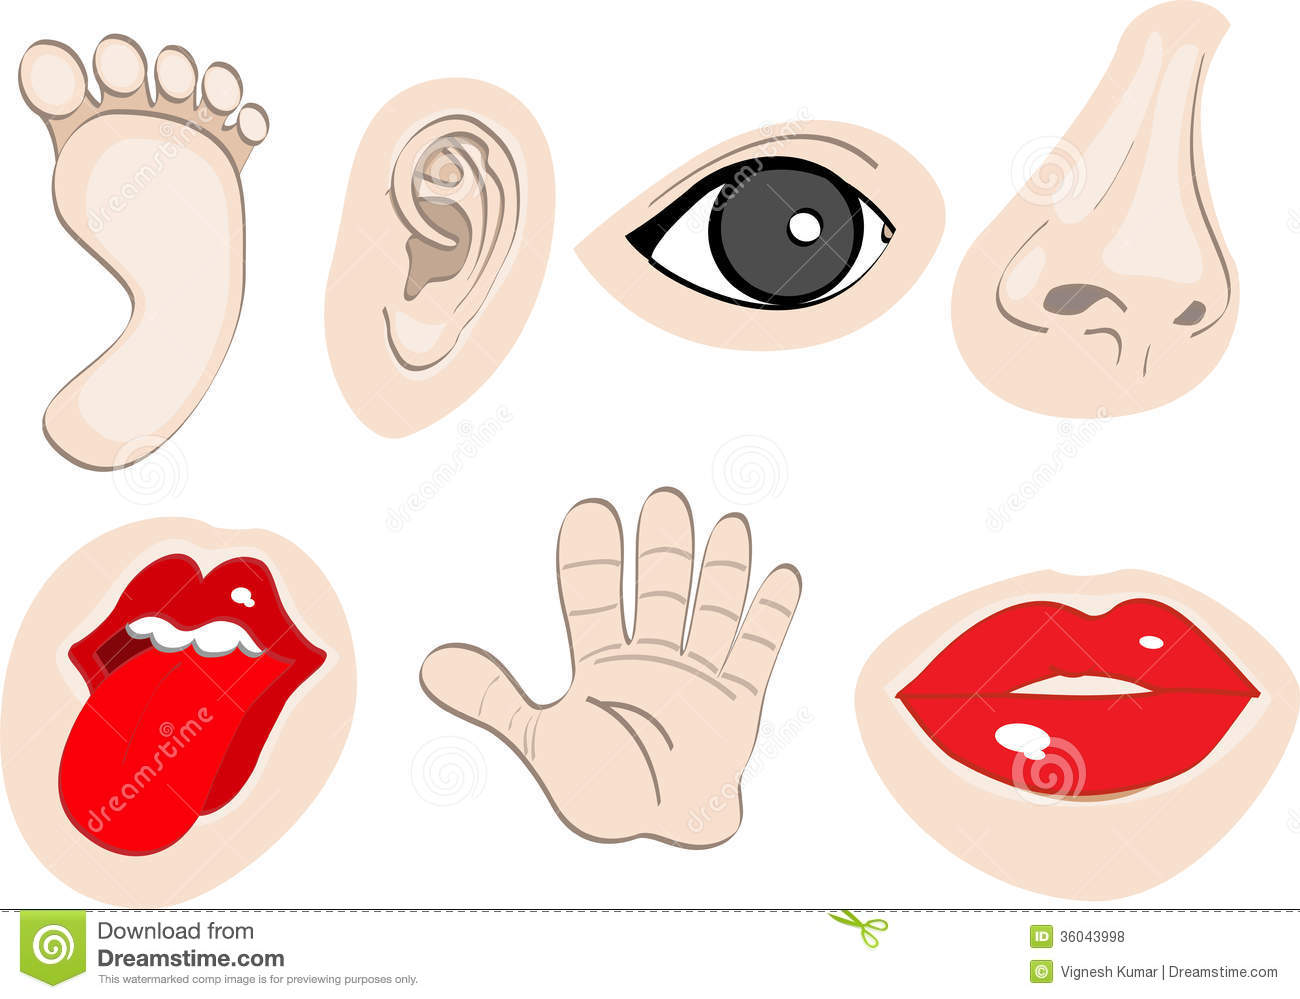 Boy Showing Parts Body as well Stock Photo Nose Eye Ear Mouth Collection Image9612900 as well Pulmones likewise Happy Crying Meme   55775 furthermore Royalty Free Stock Photos Human Foot Image9749988. on human nose clip art